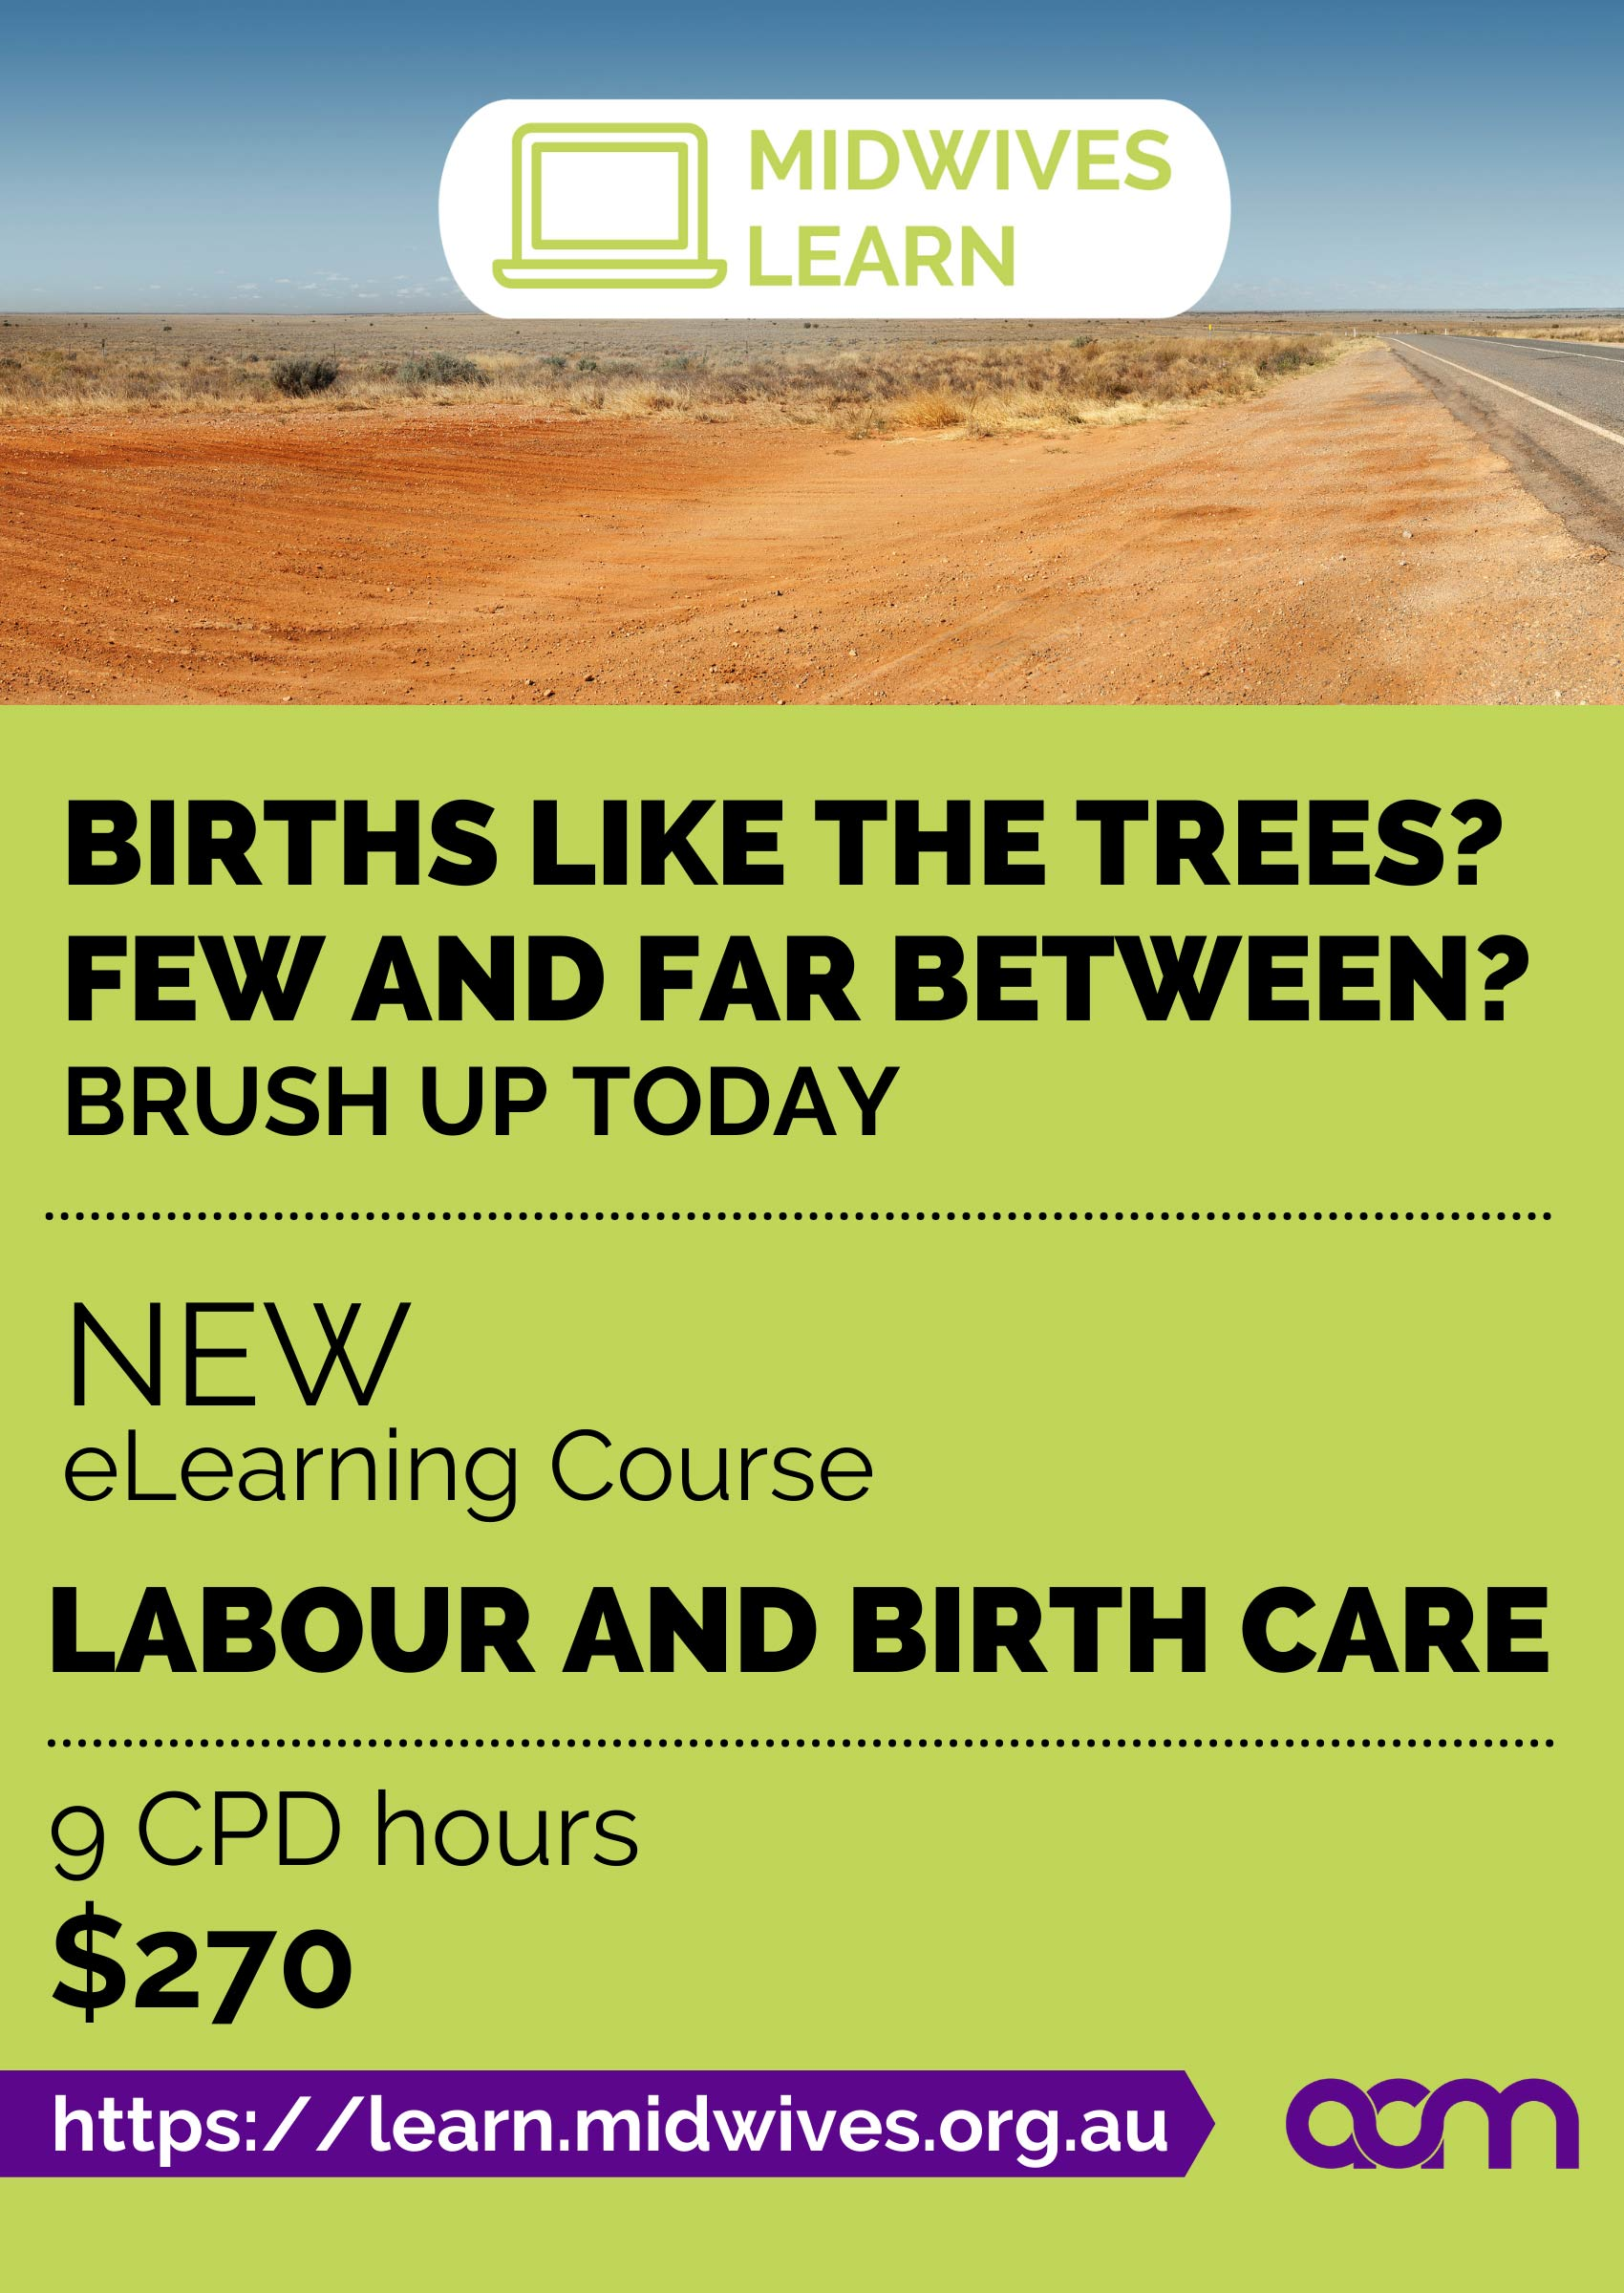 Midwives Learn, Births like the trees? Few and far between? Brush up today. New eLearning Course. Labour and birth care 9 CPD hours $270 https://learn.midwives.org.au